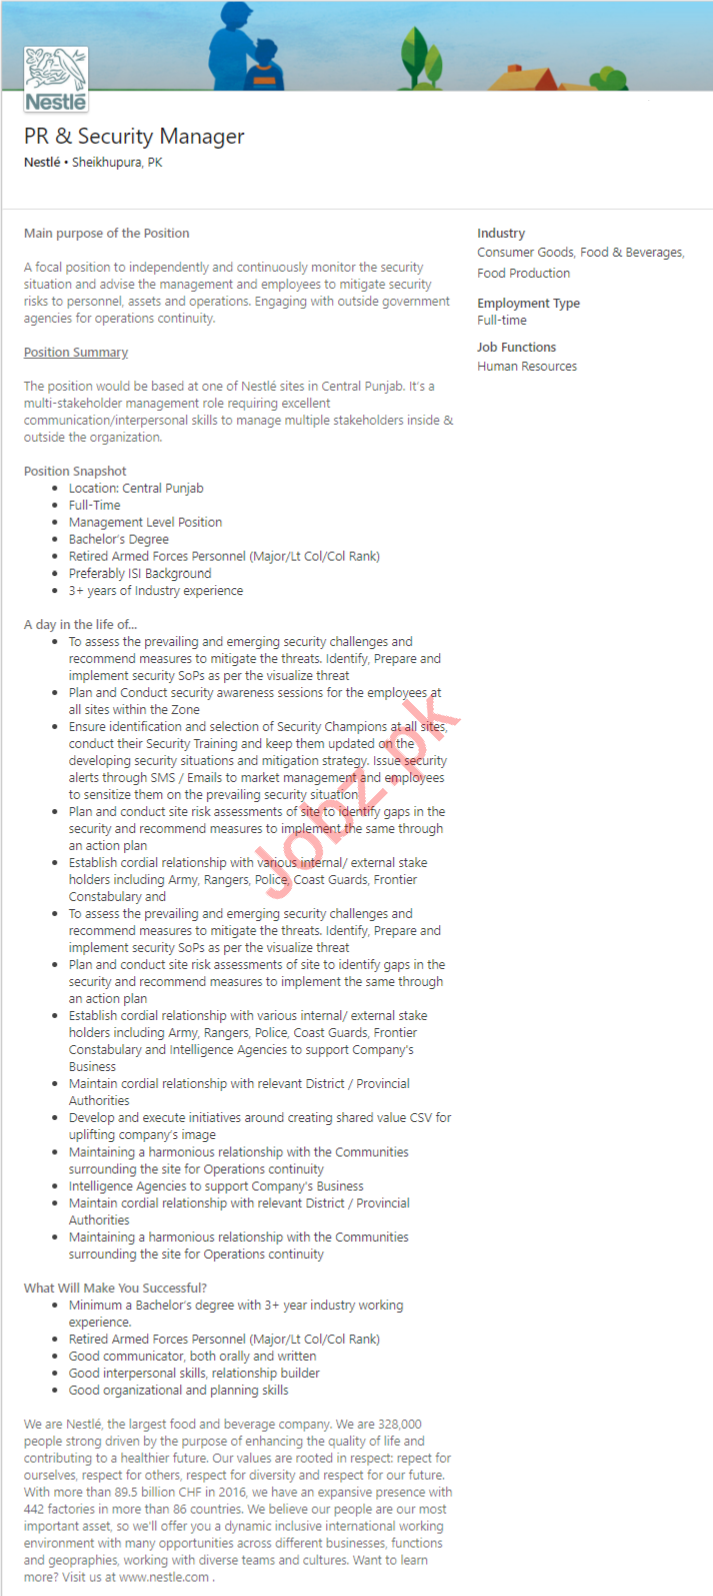 Nestle Company Job For PR & Security Manager